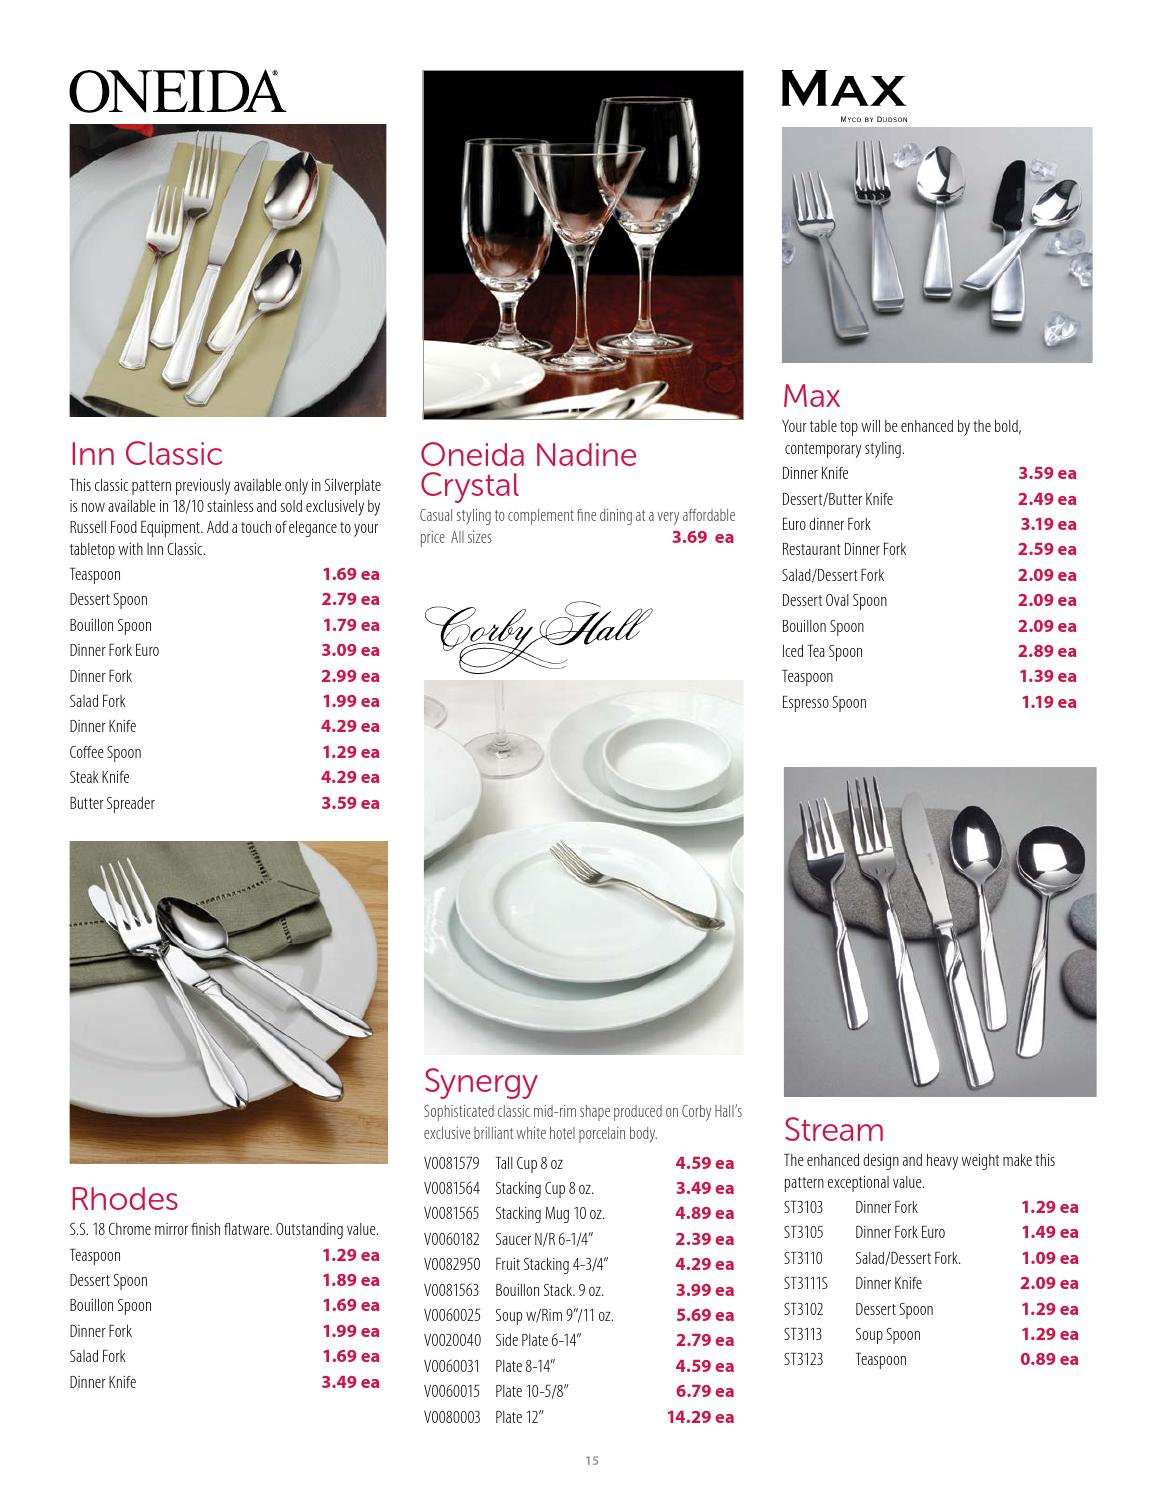 Russell Food Equipment Spring Flyer 2015 By Russell Food Equipment